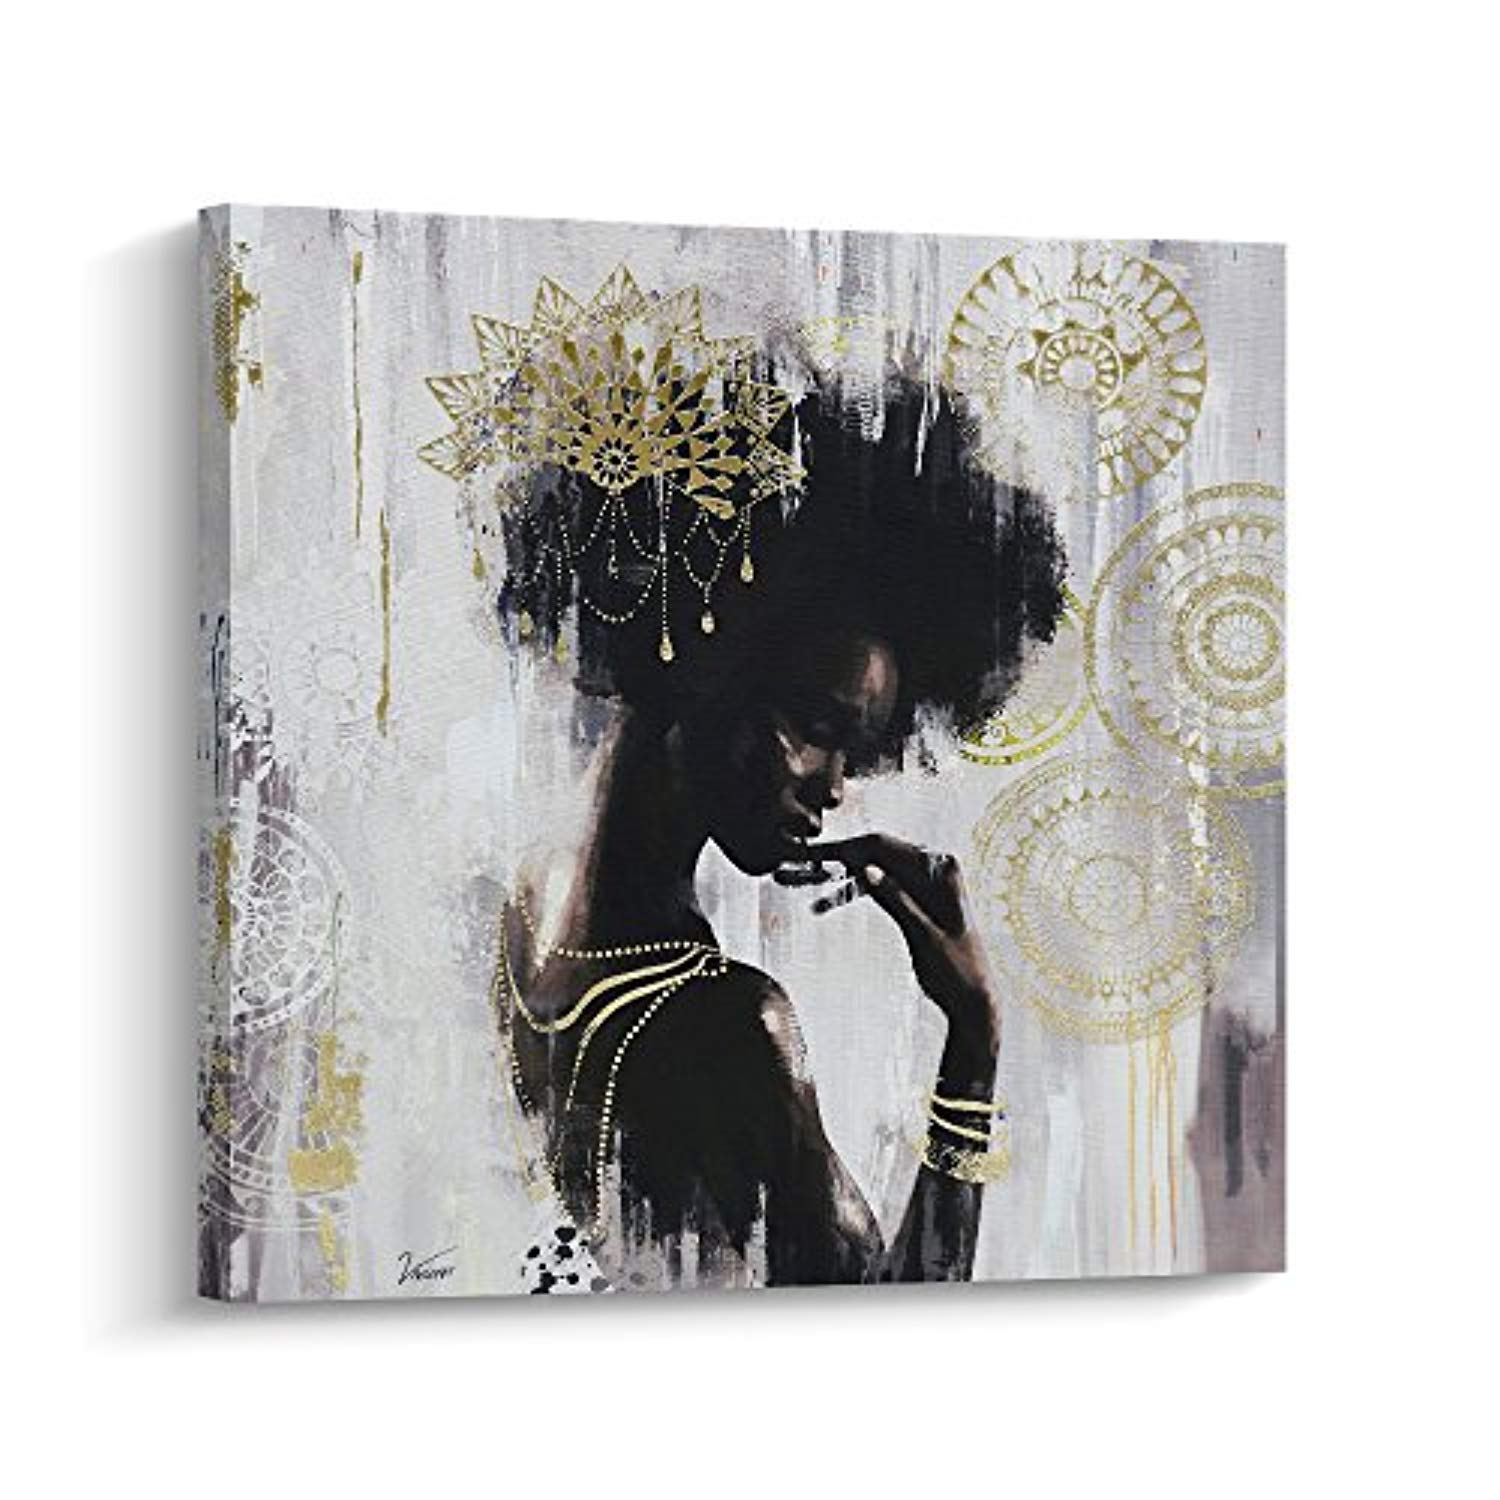 Pi Art African American Wall Decor Canvas Wall Art Gold Black Art On Canvas Stretched And Framed Wall Art For Living Room 80x80cm A